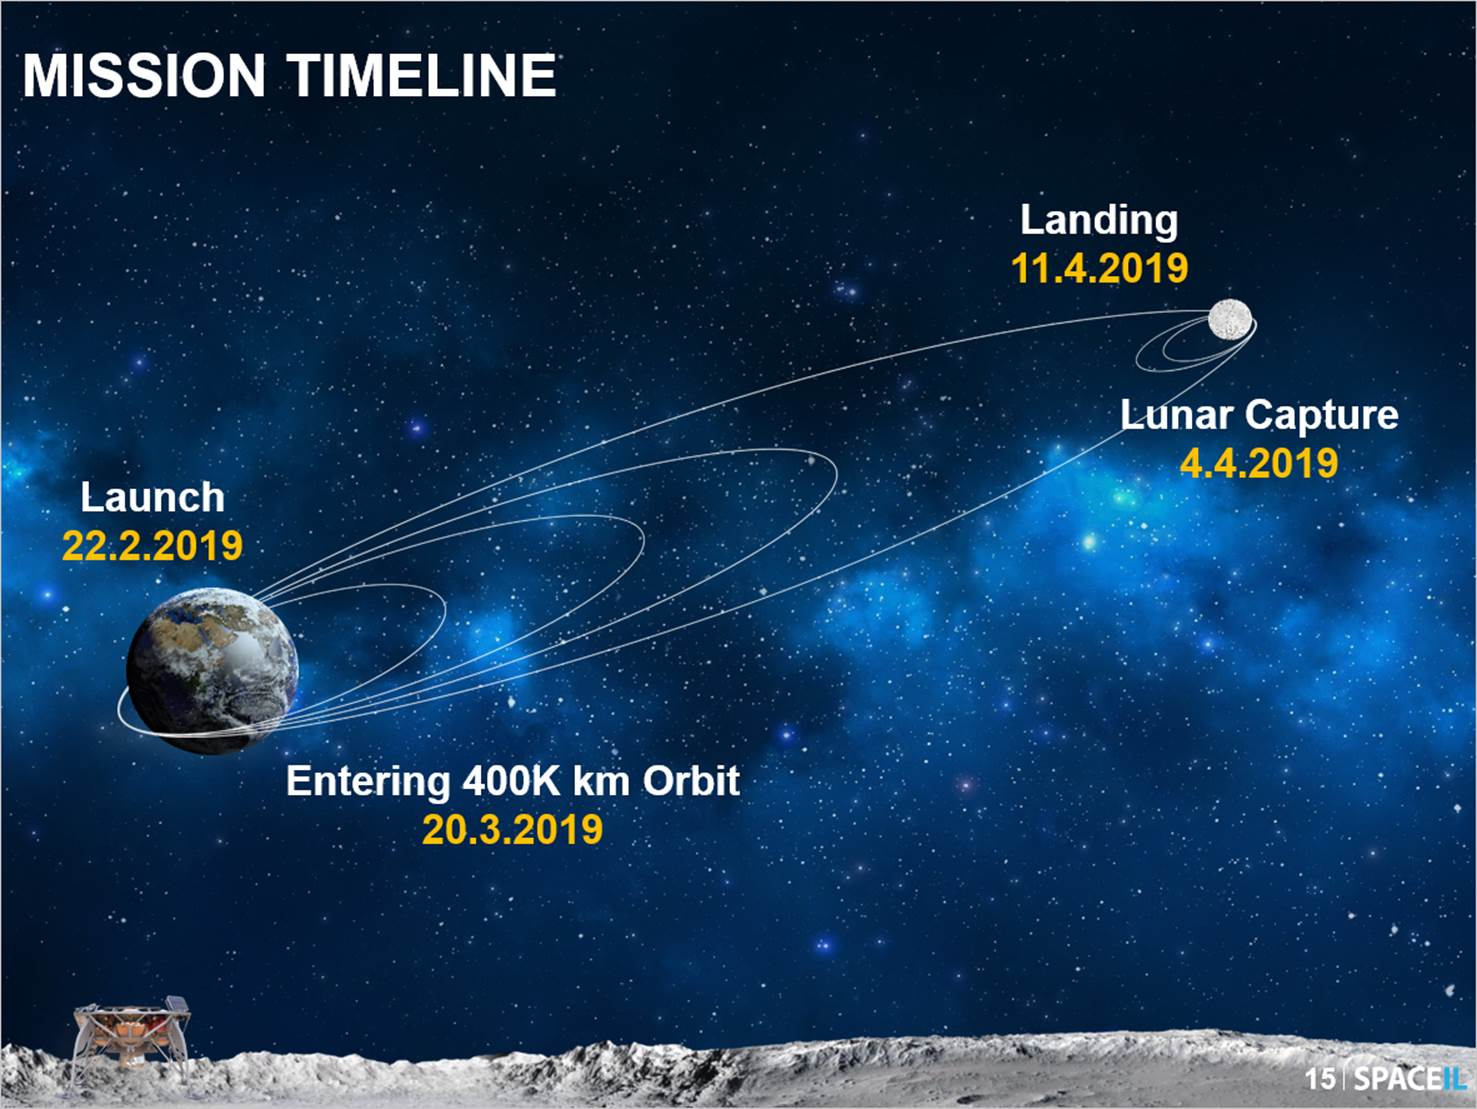 SpaceIL's lunar lander will take several months to gradually raise its orbit to be captured by the Moon's gravity. Once in lunar orbit, it will perform a deorbit burn to land on the surface. Image Credit: SpaceIL